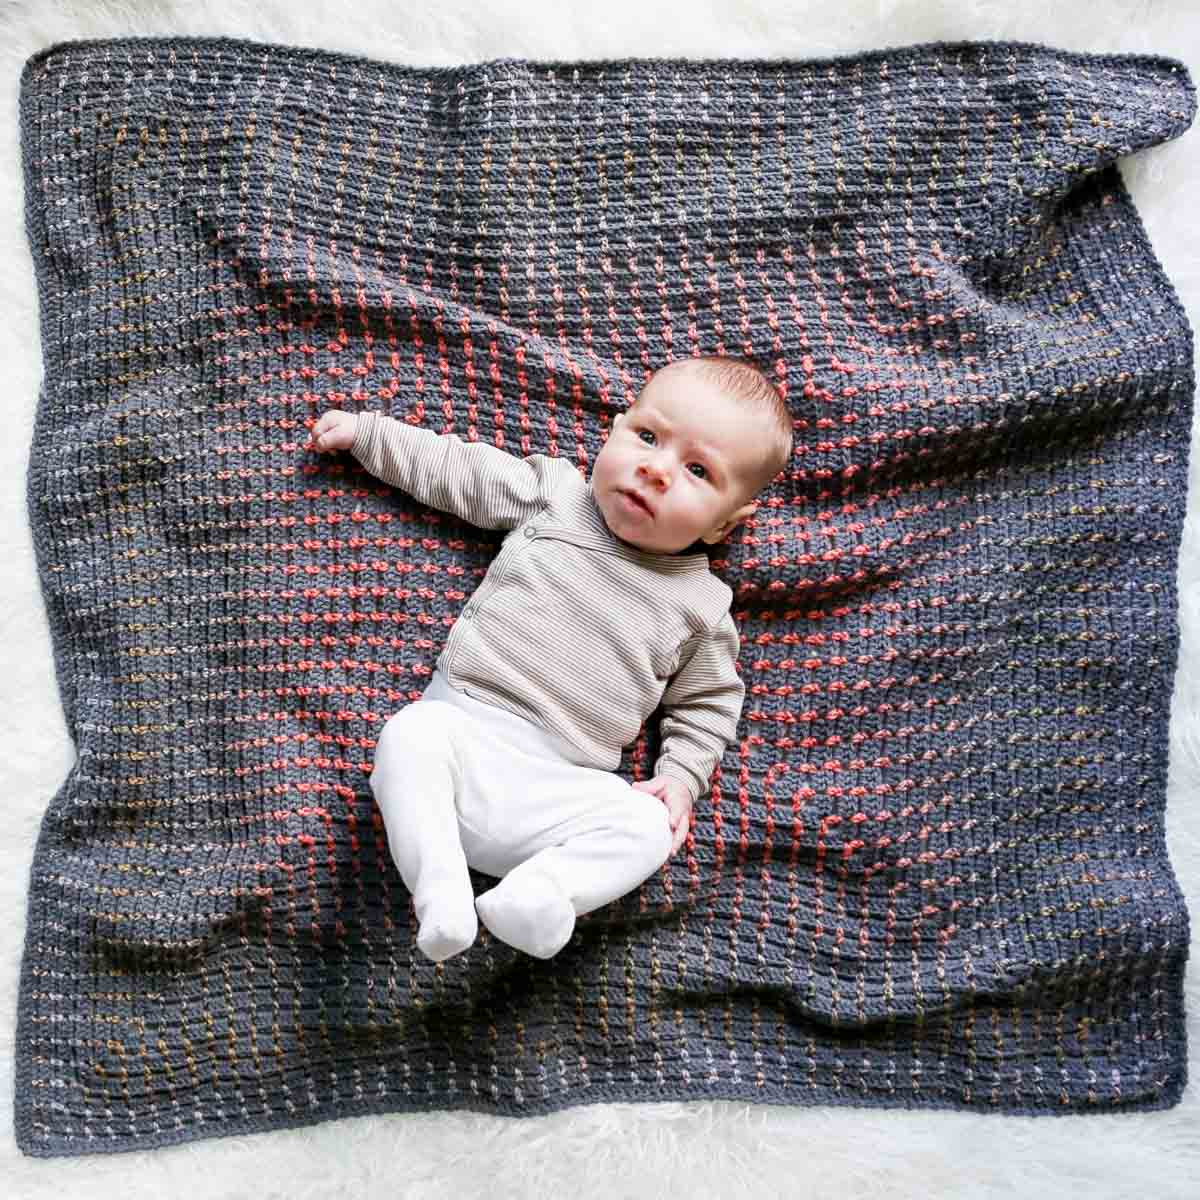 Young infant baby laying on top of a rainbow crochet blanket with modern details.